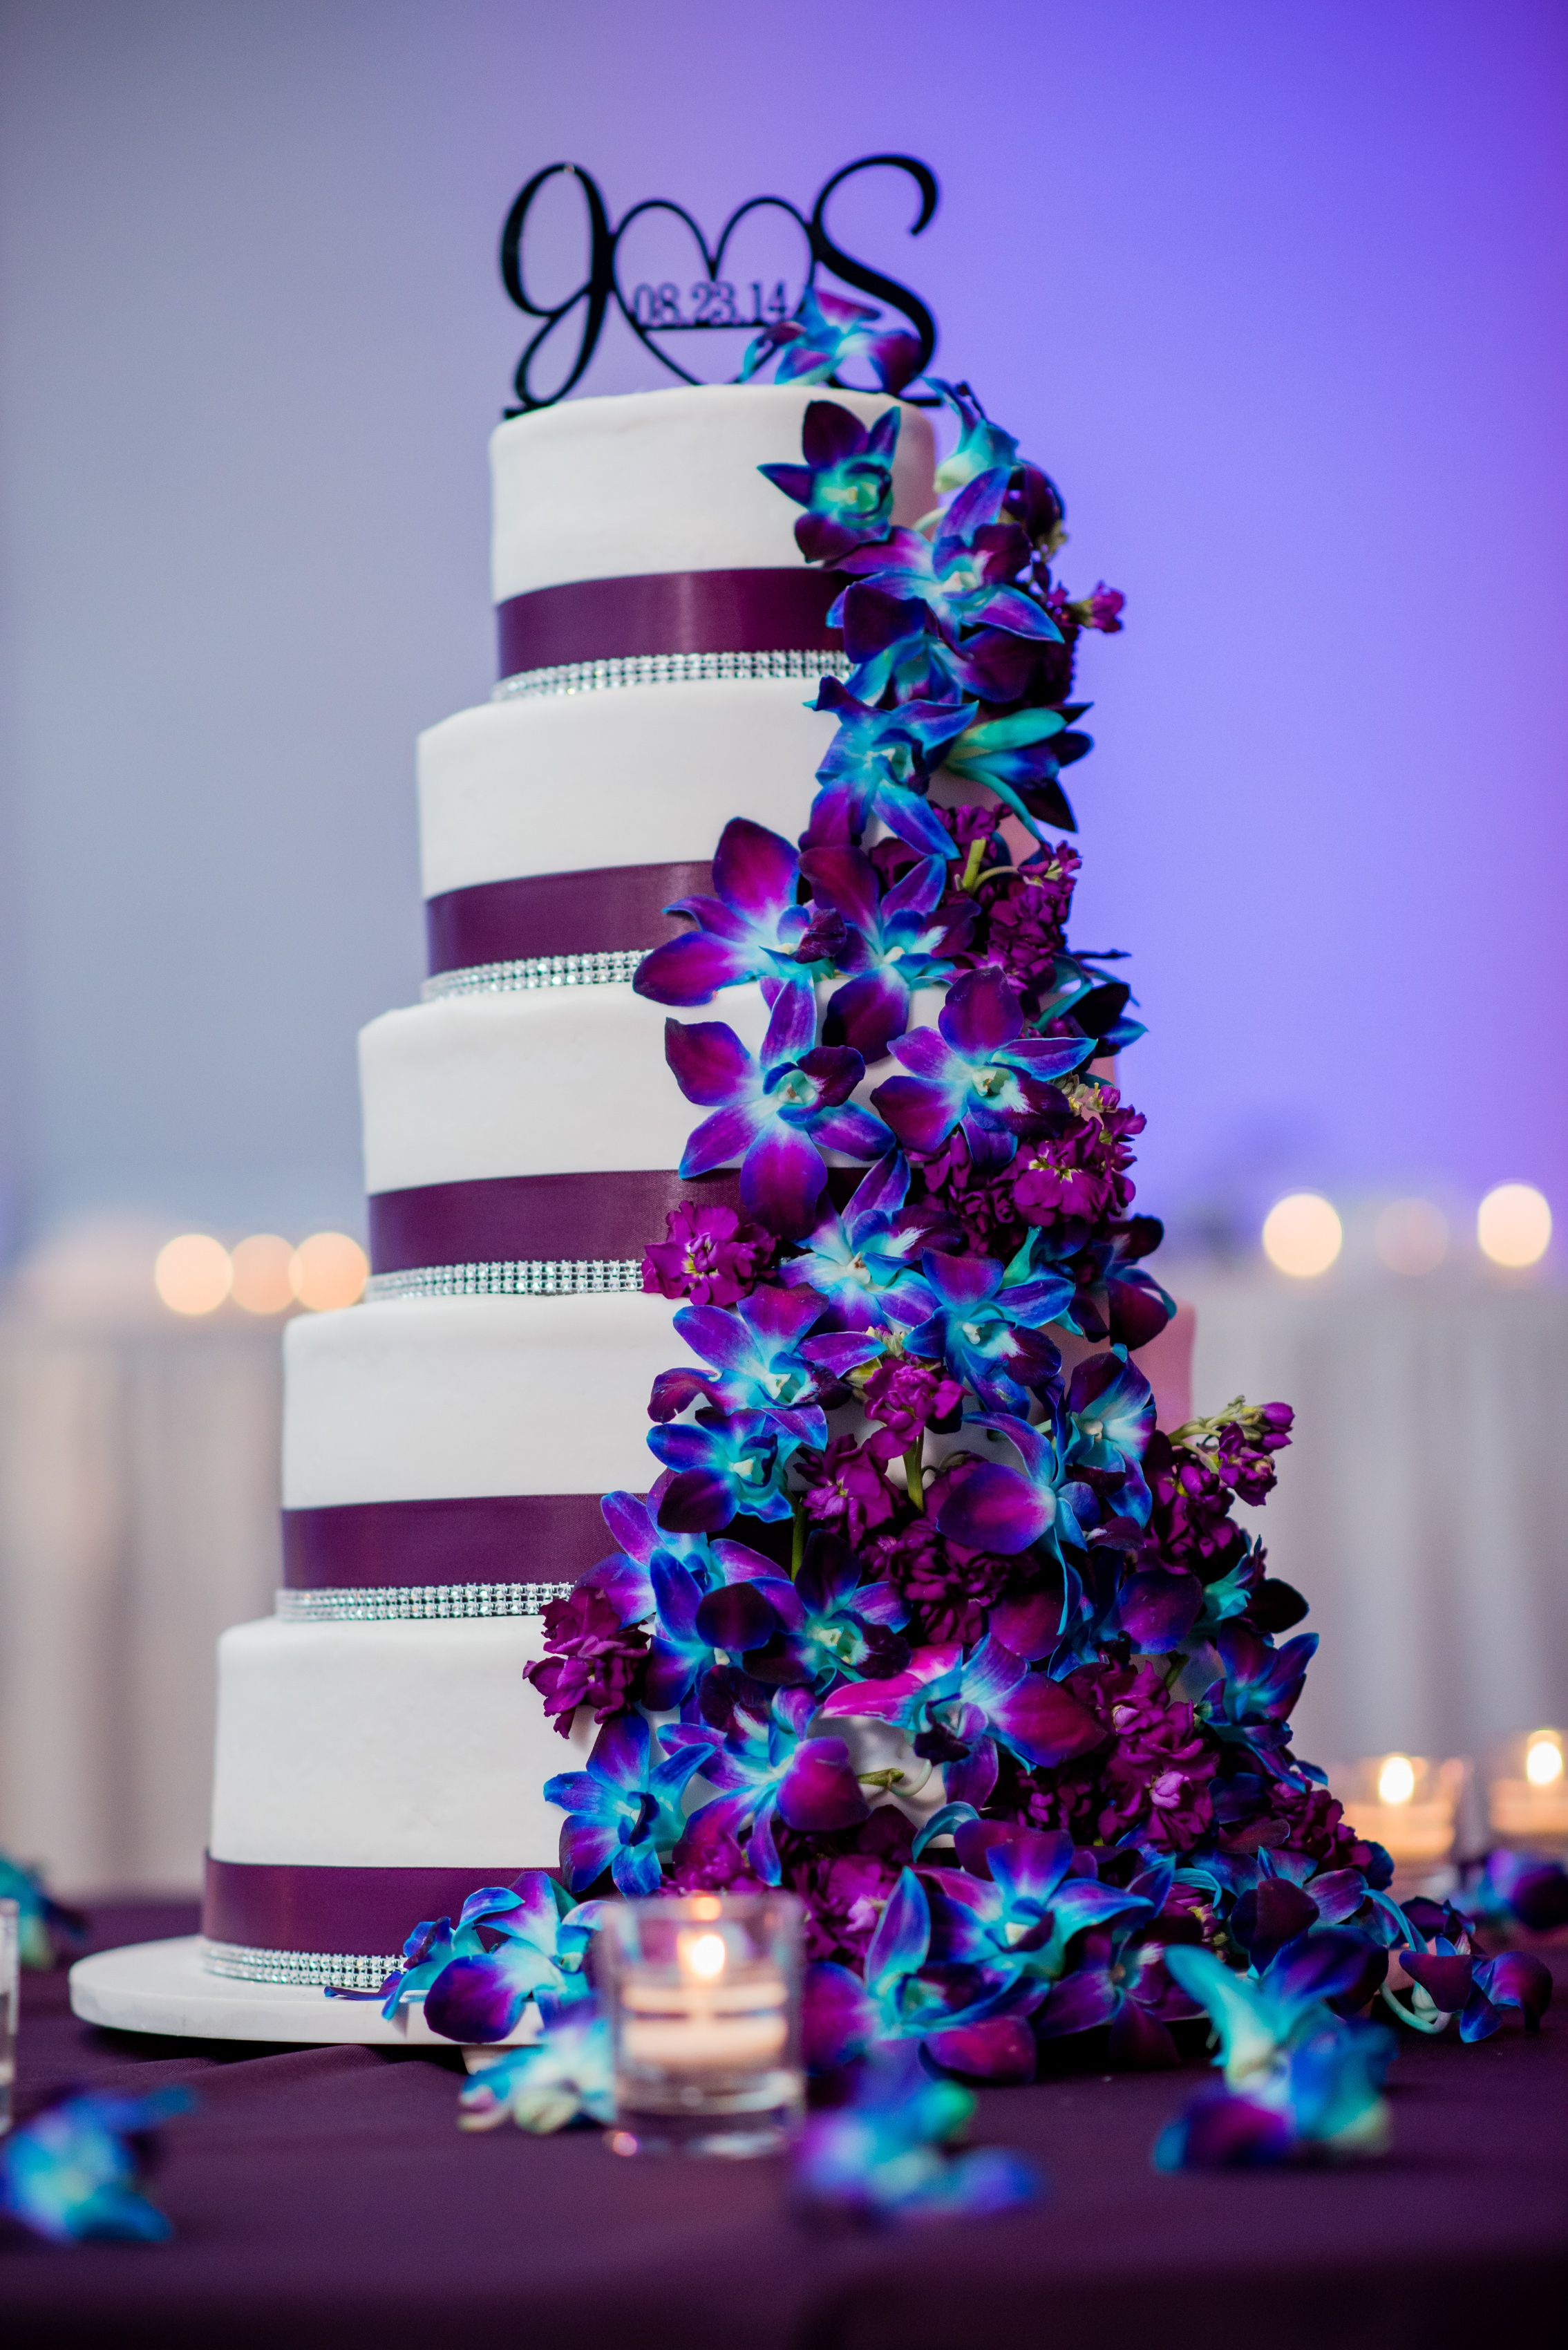 Our wedding cake Purple Plum theme with dendrobium orchids dyed